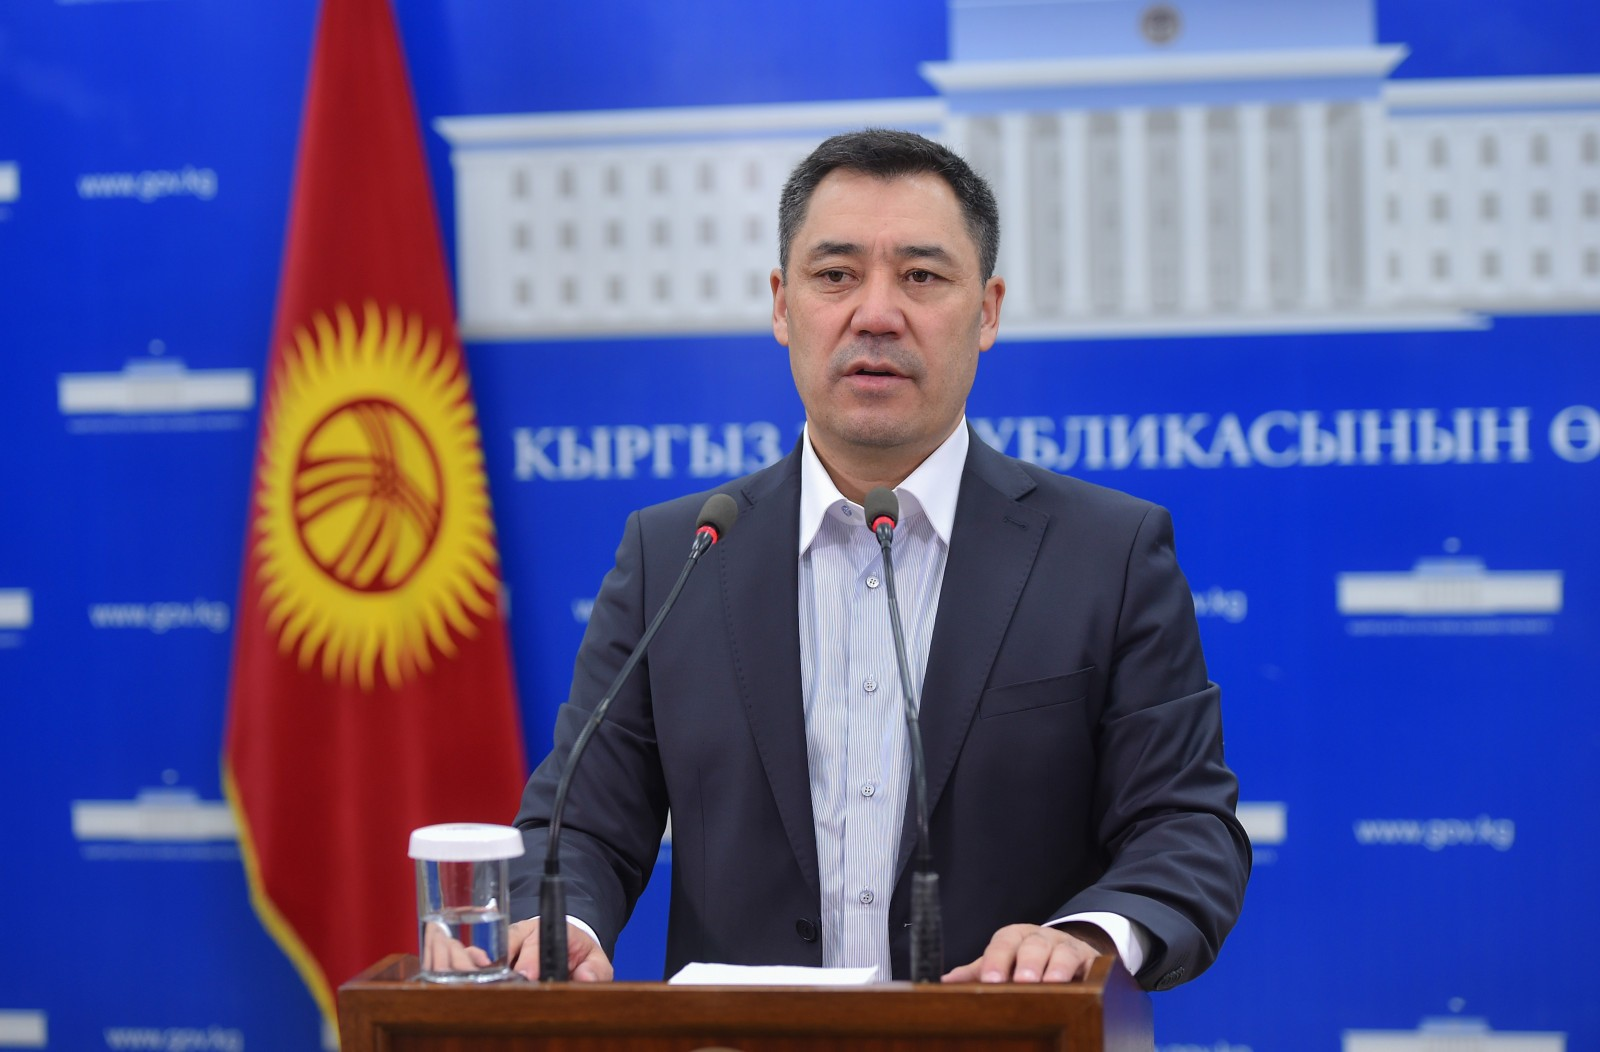 Photo: Acting President, Prime Minister of the Kyrgyz Republic Sadyr Japarov addresses a news conference, October 21, 2020. Credit: gov.kg